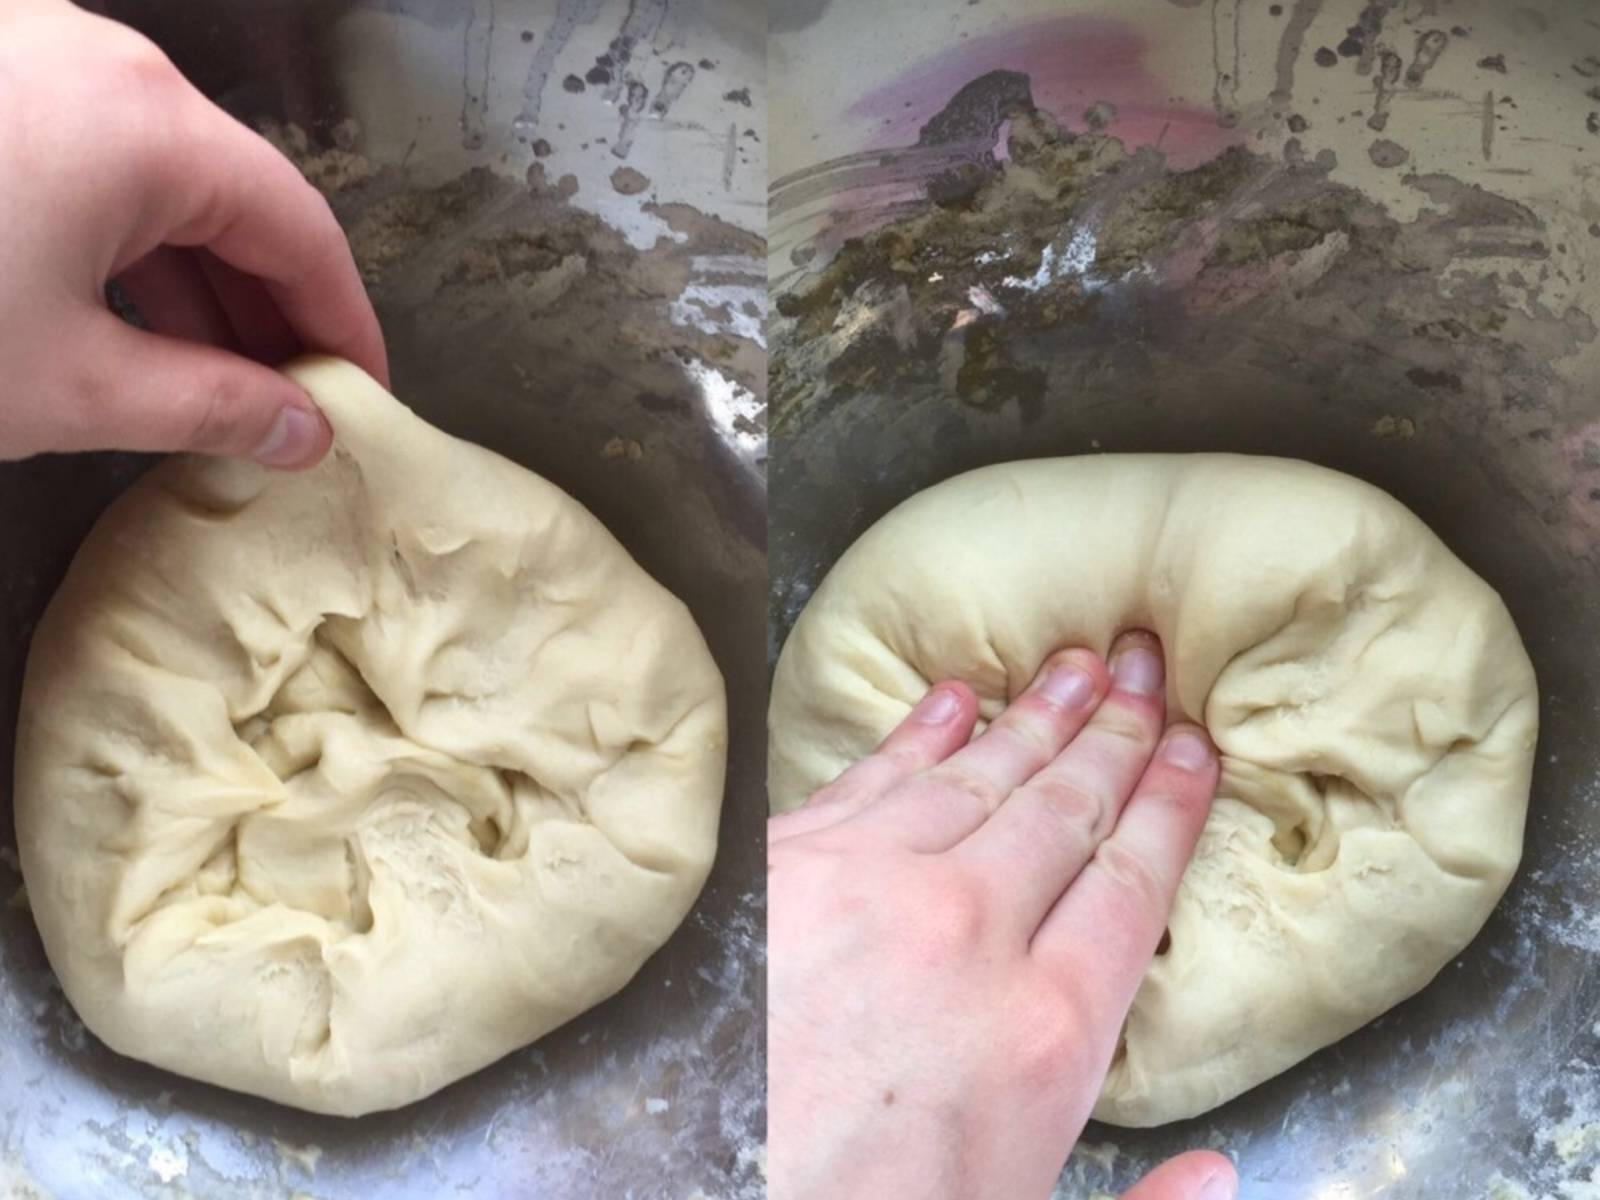 Pull dough up on one side and press down in the center. Repeat this in a circular movement until the entire dough has been worked. Cover again and rest for 5 min. Repeat this step two times until dough is elastic.